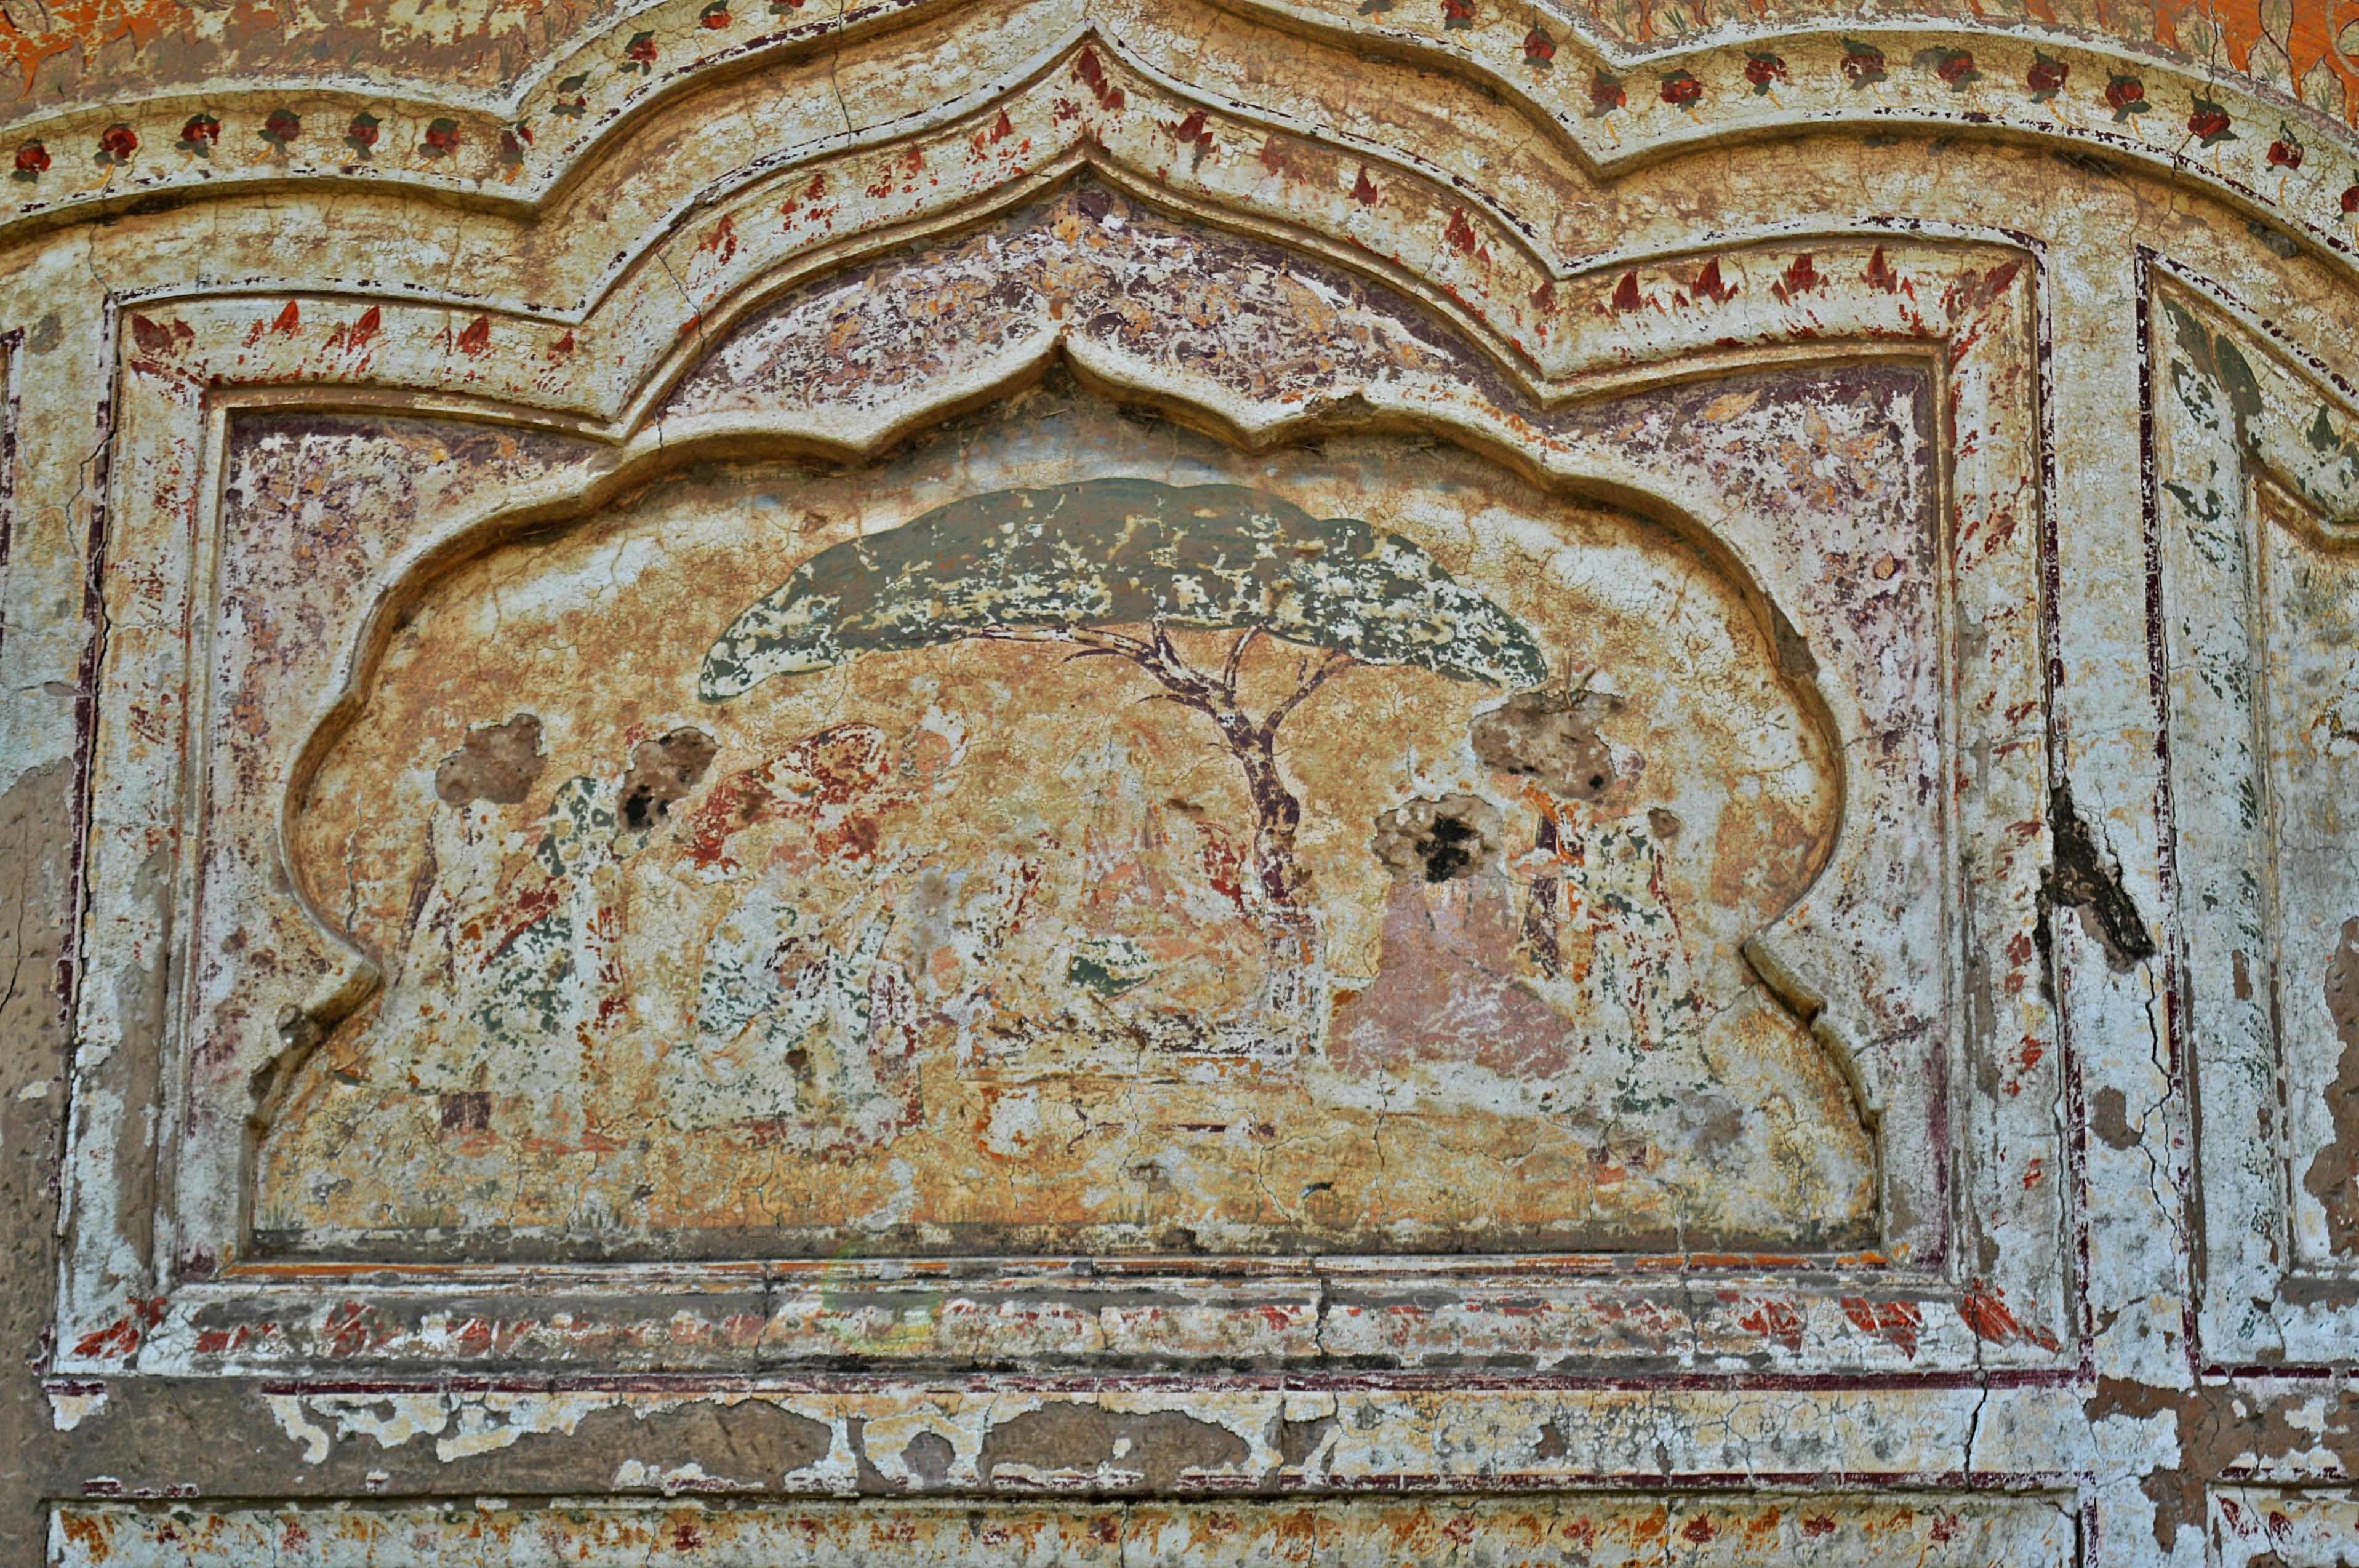 The fading painting inside the samadhi.